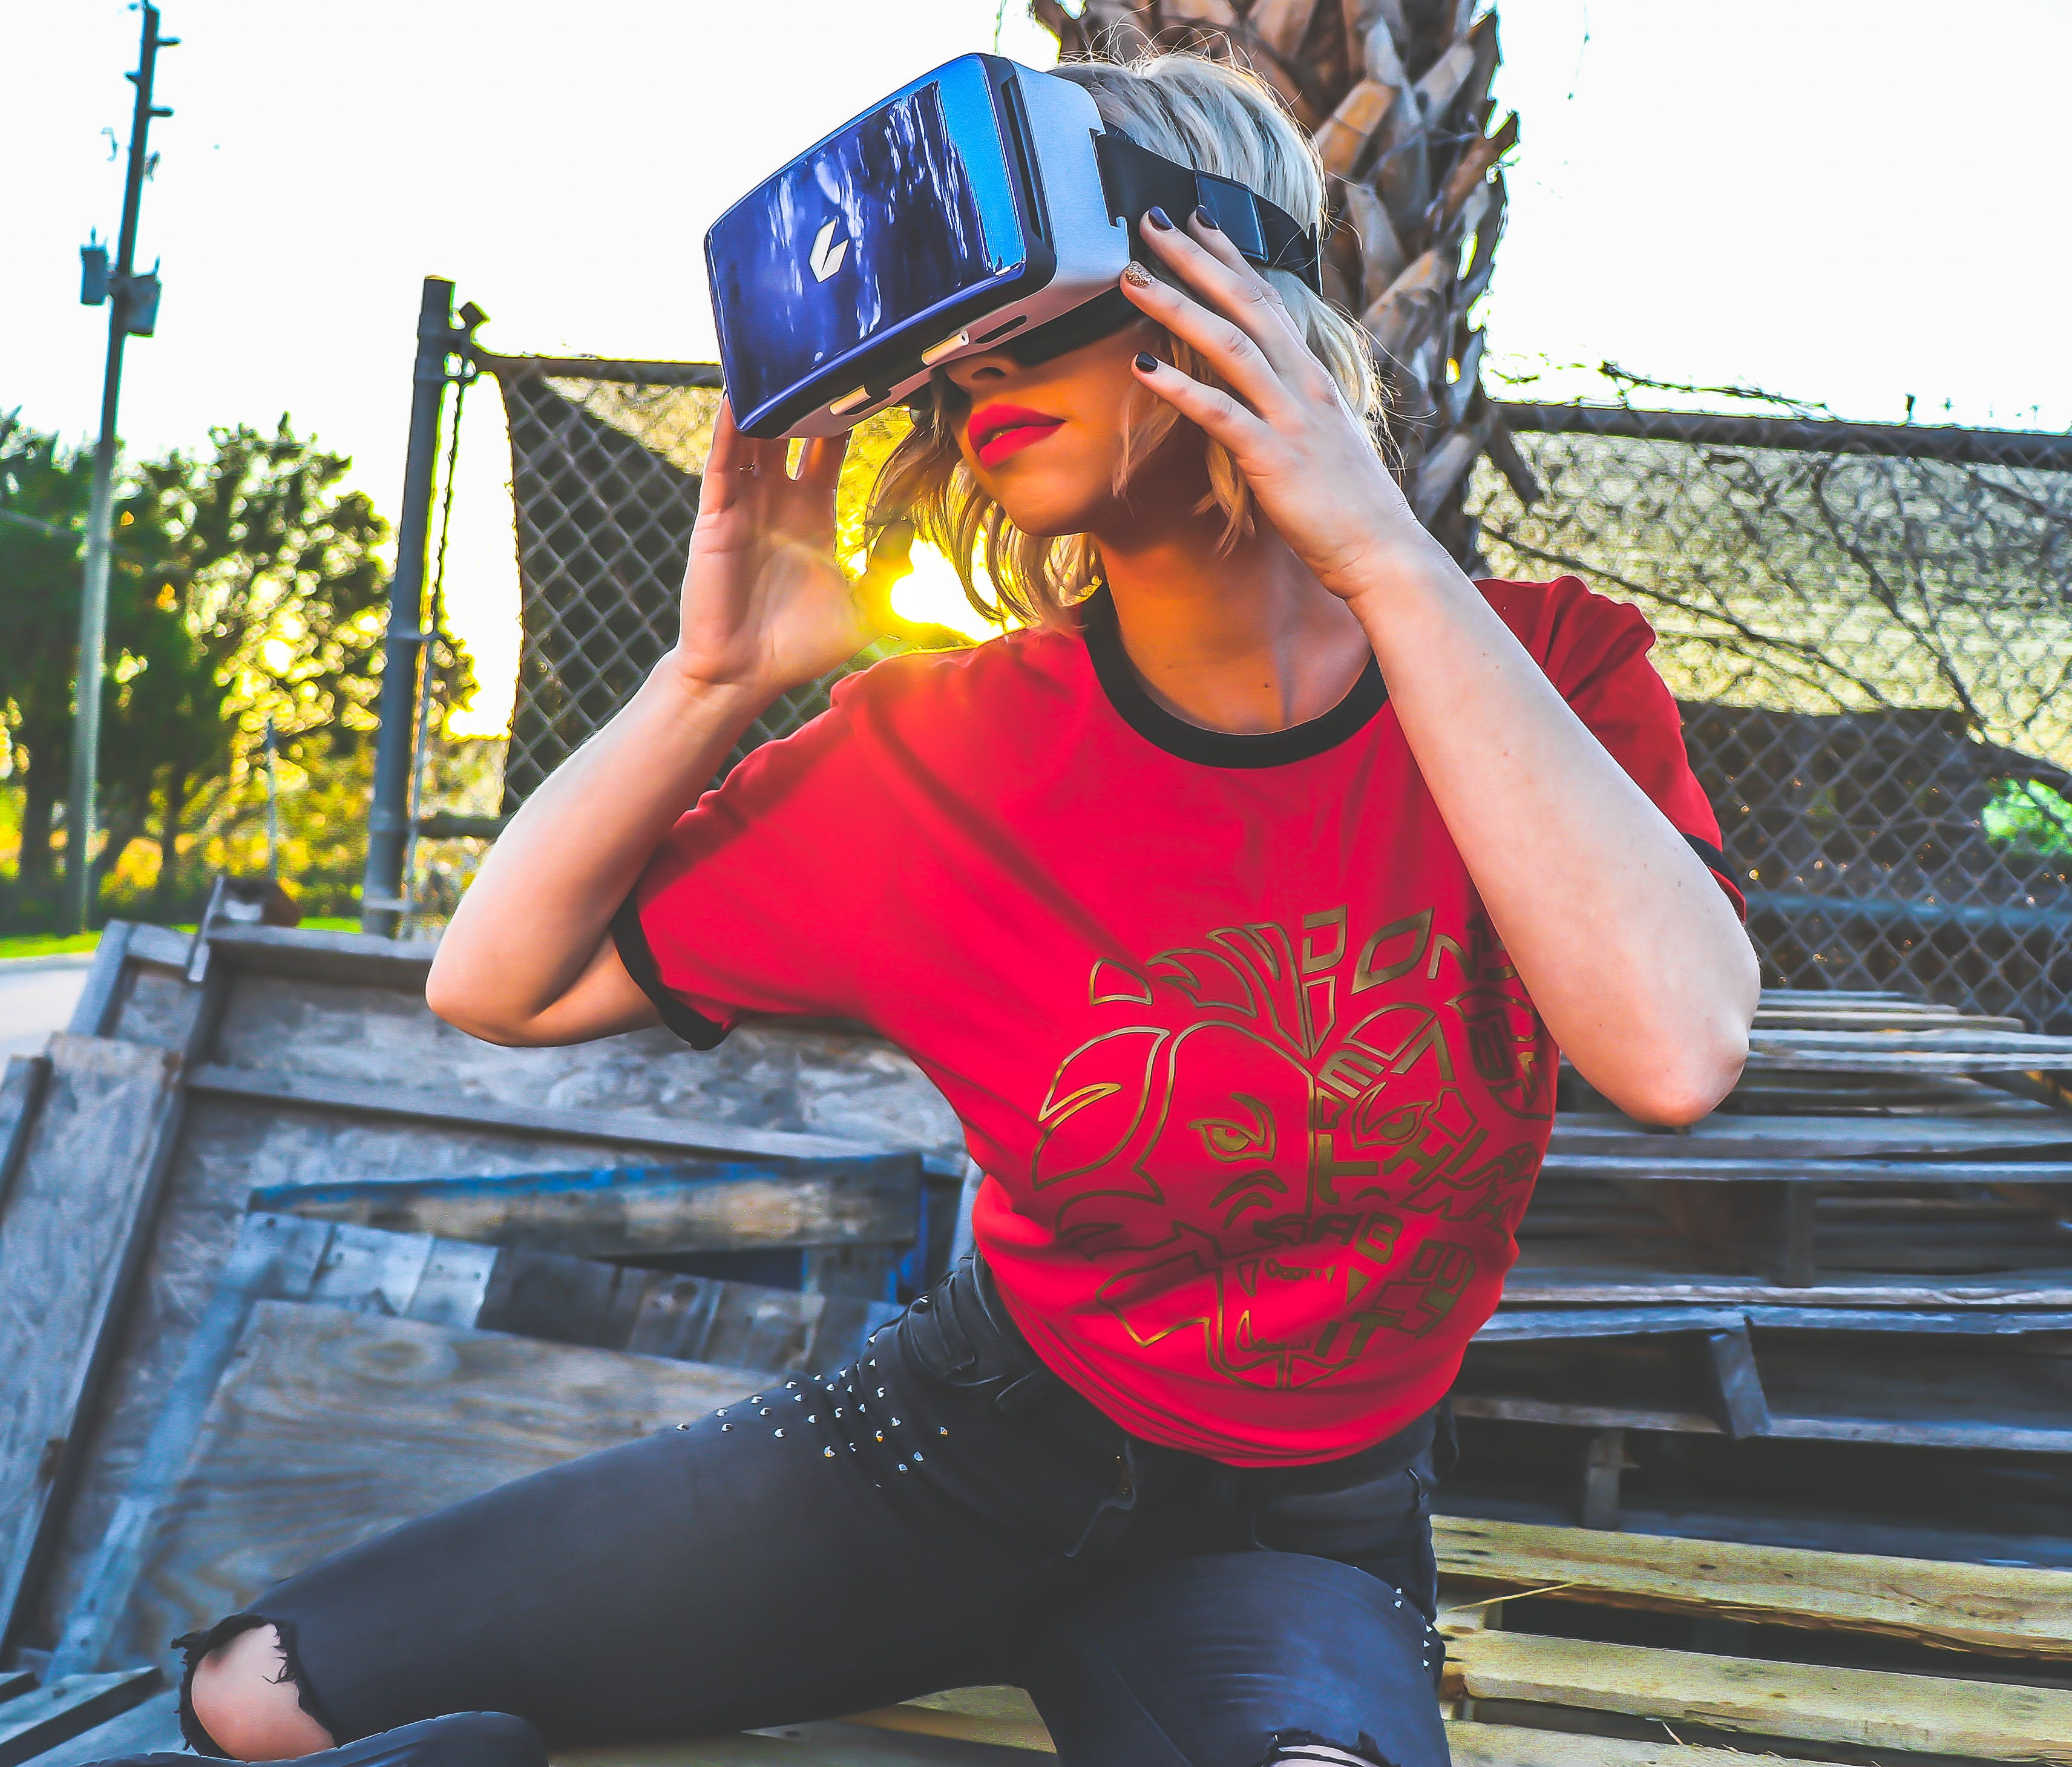 Woman Wearing Red and Black Top and Blue Distressed Bottoms Wearing Gray and Black Virtual Reality Sunglasses